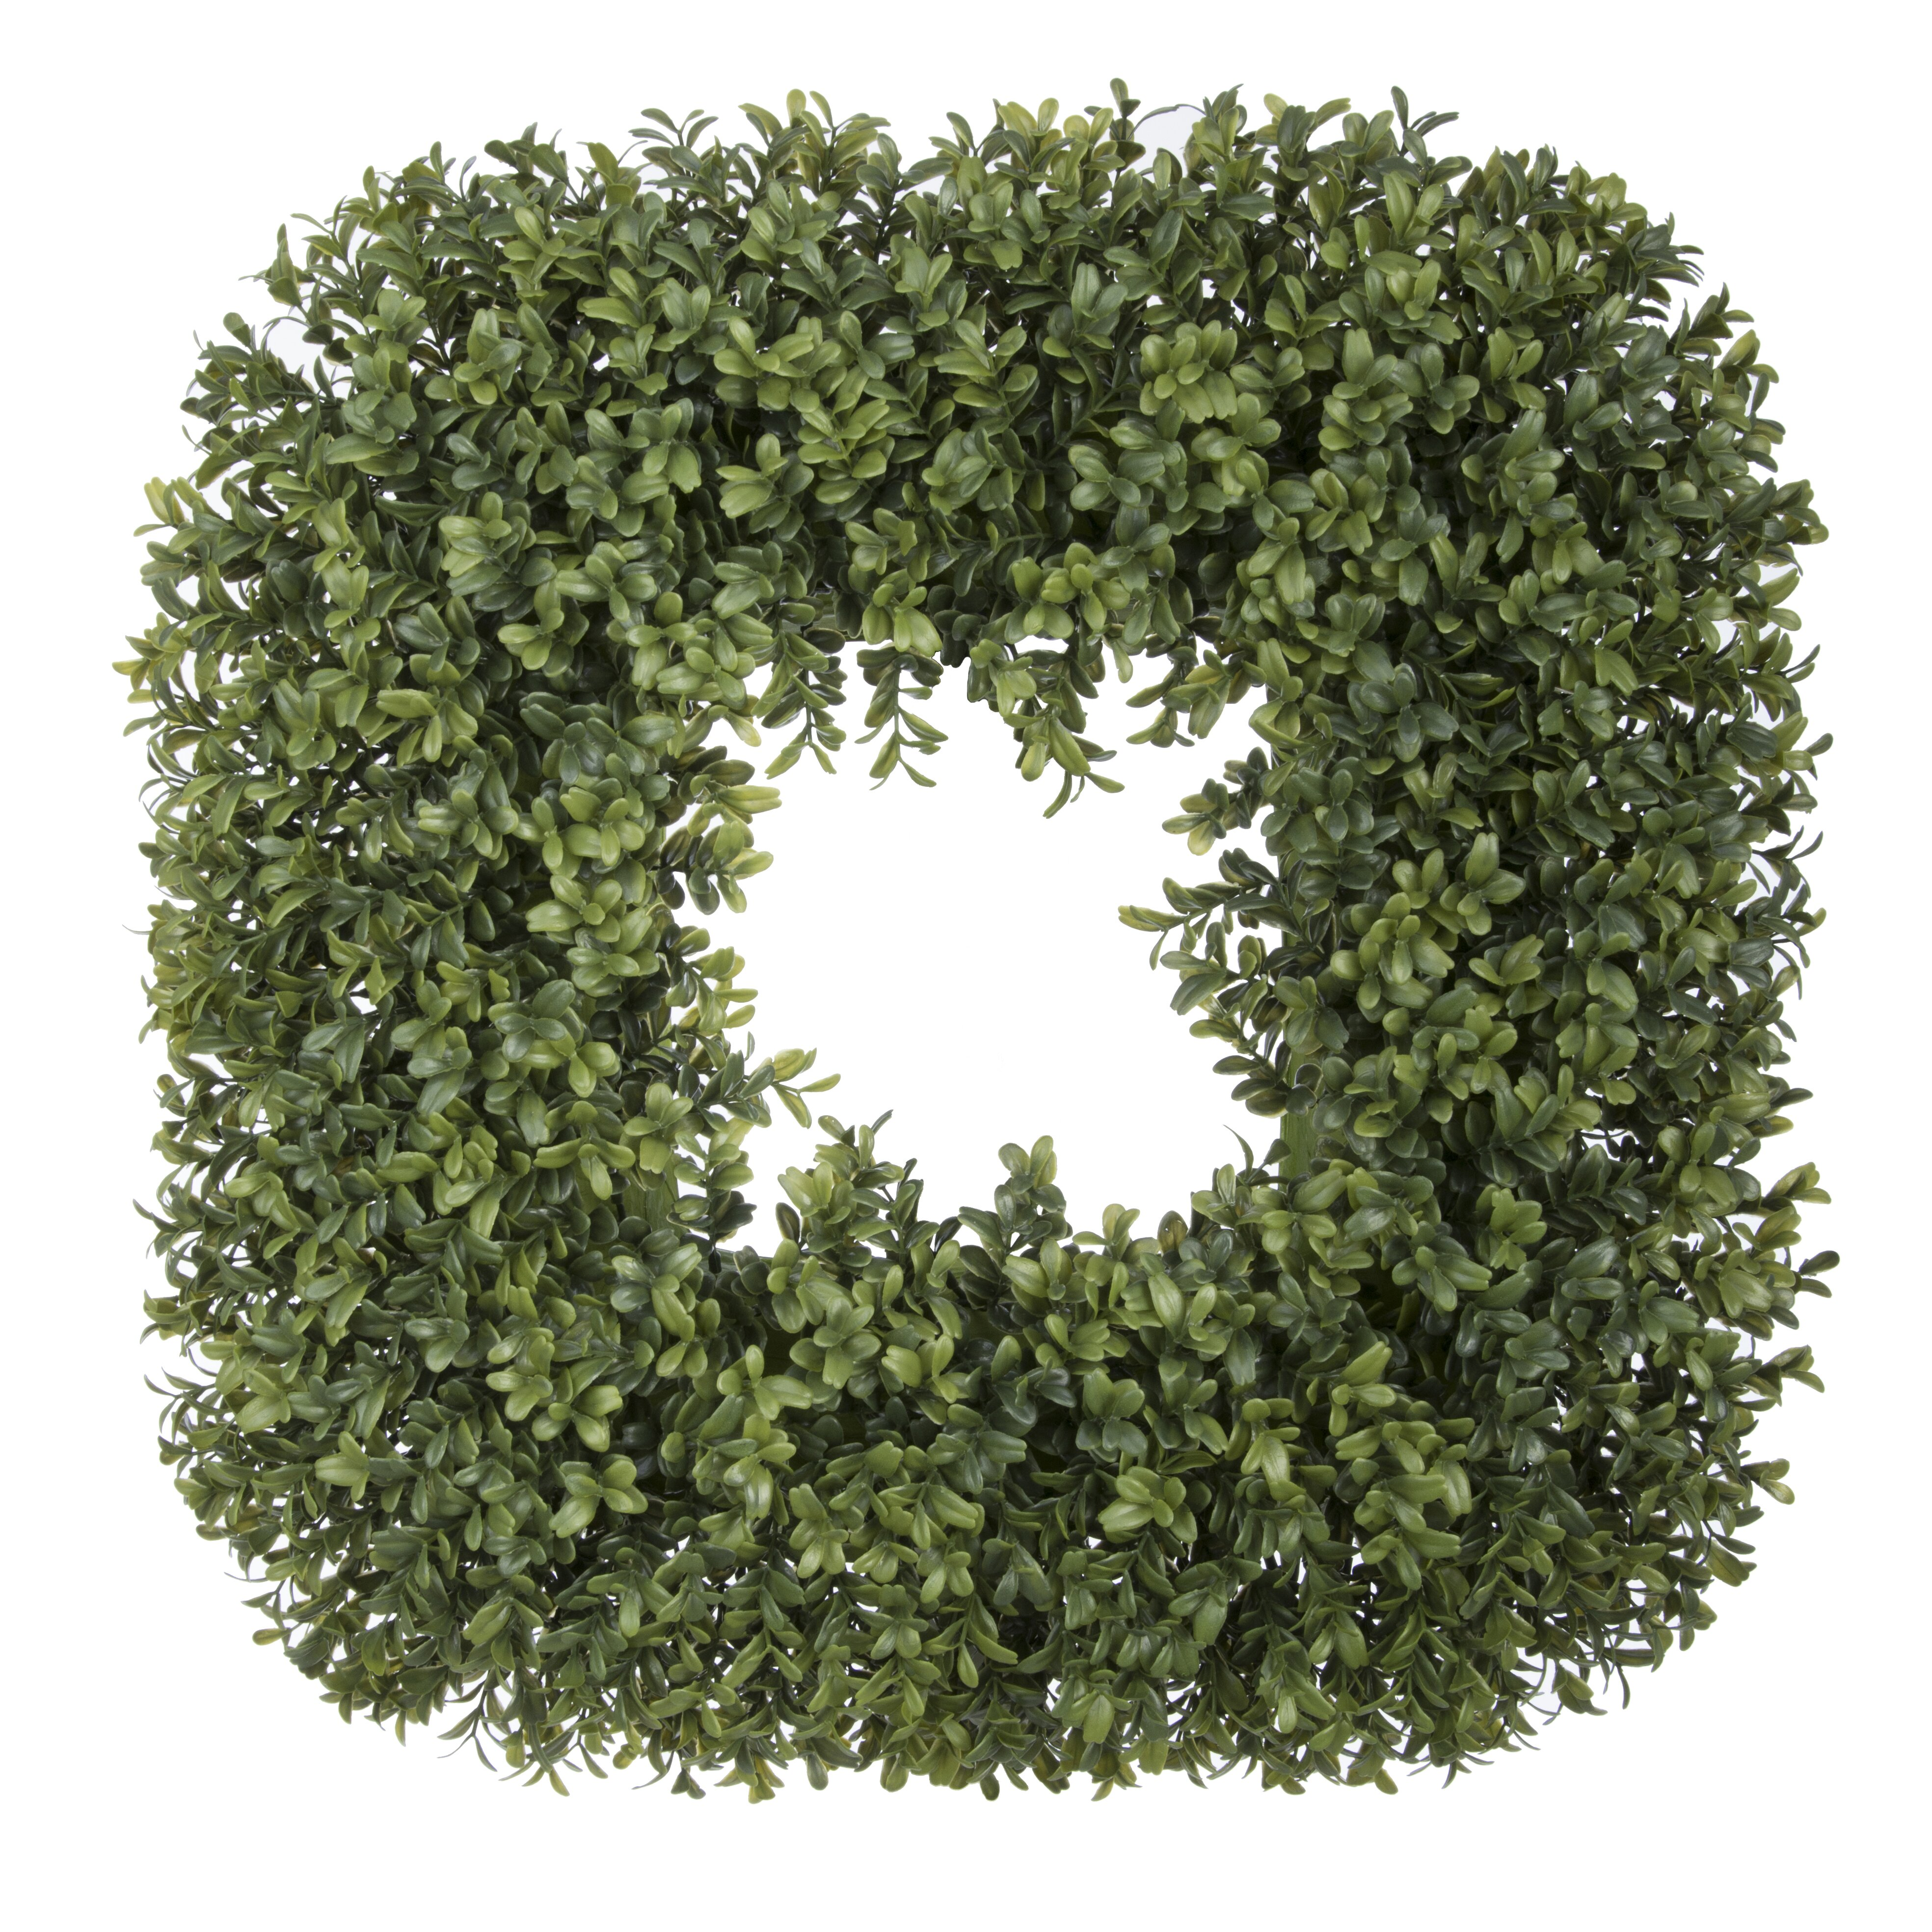 House of silk flowers 19 quot artificial boxwood wreath amp reviews